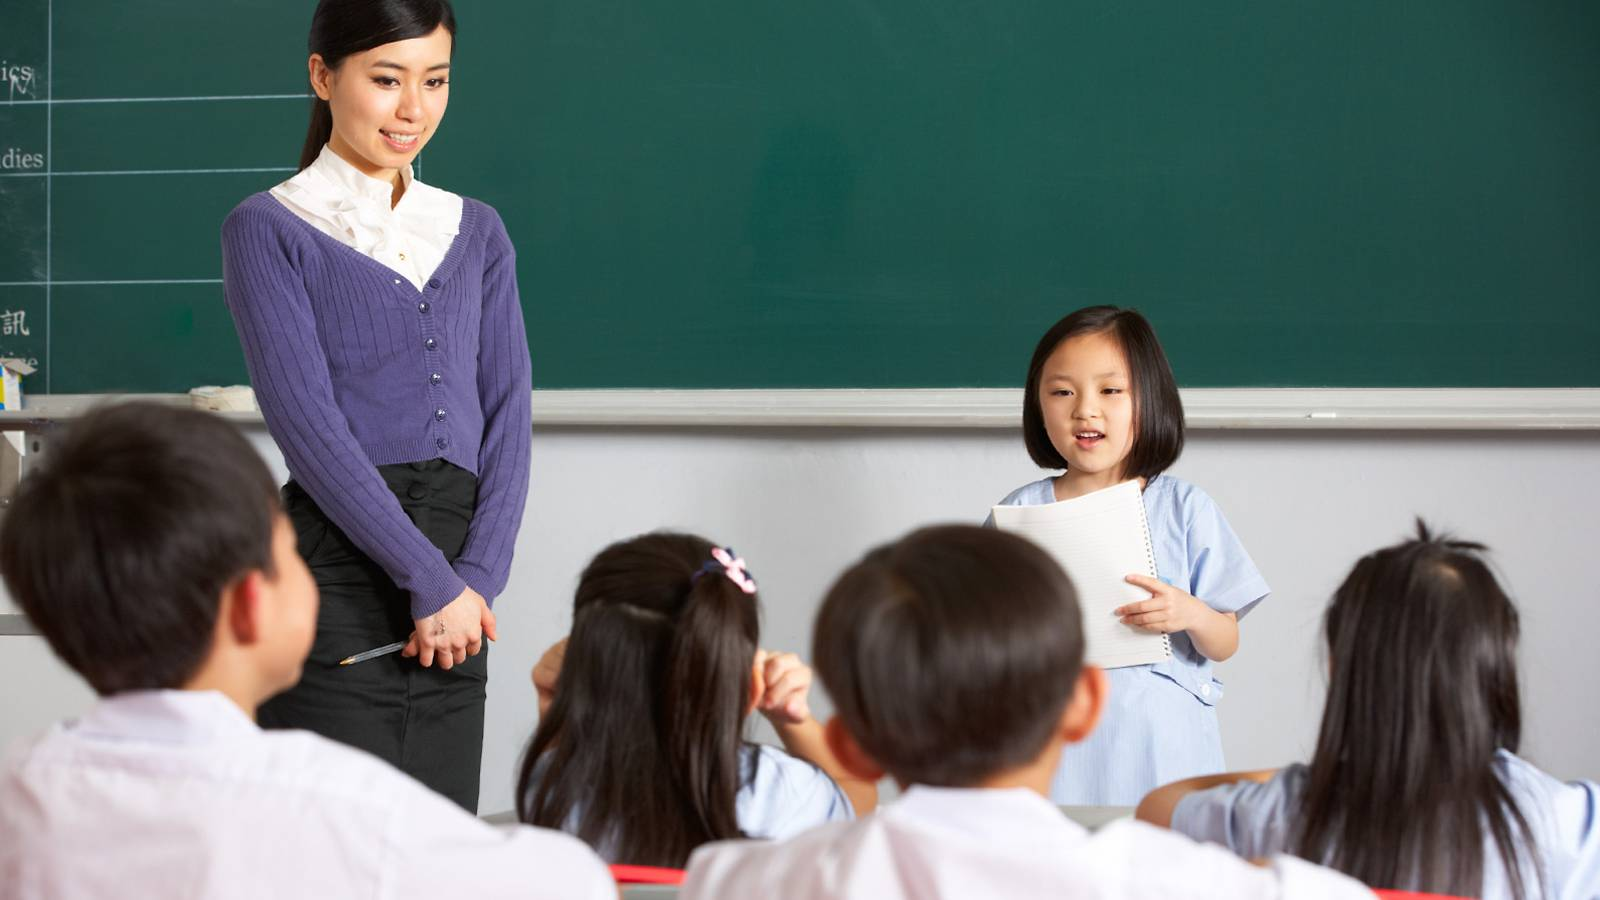 Kids-First-day-of-Primary-school-7-phrases-that'll-calm-junior's-jitters-2